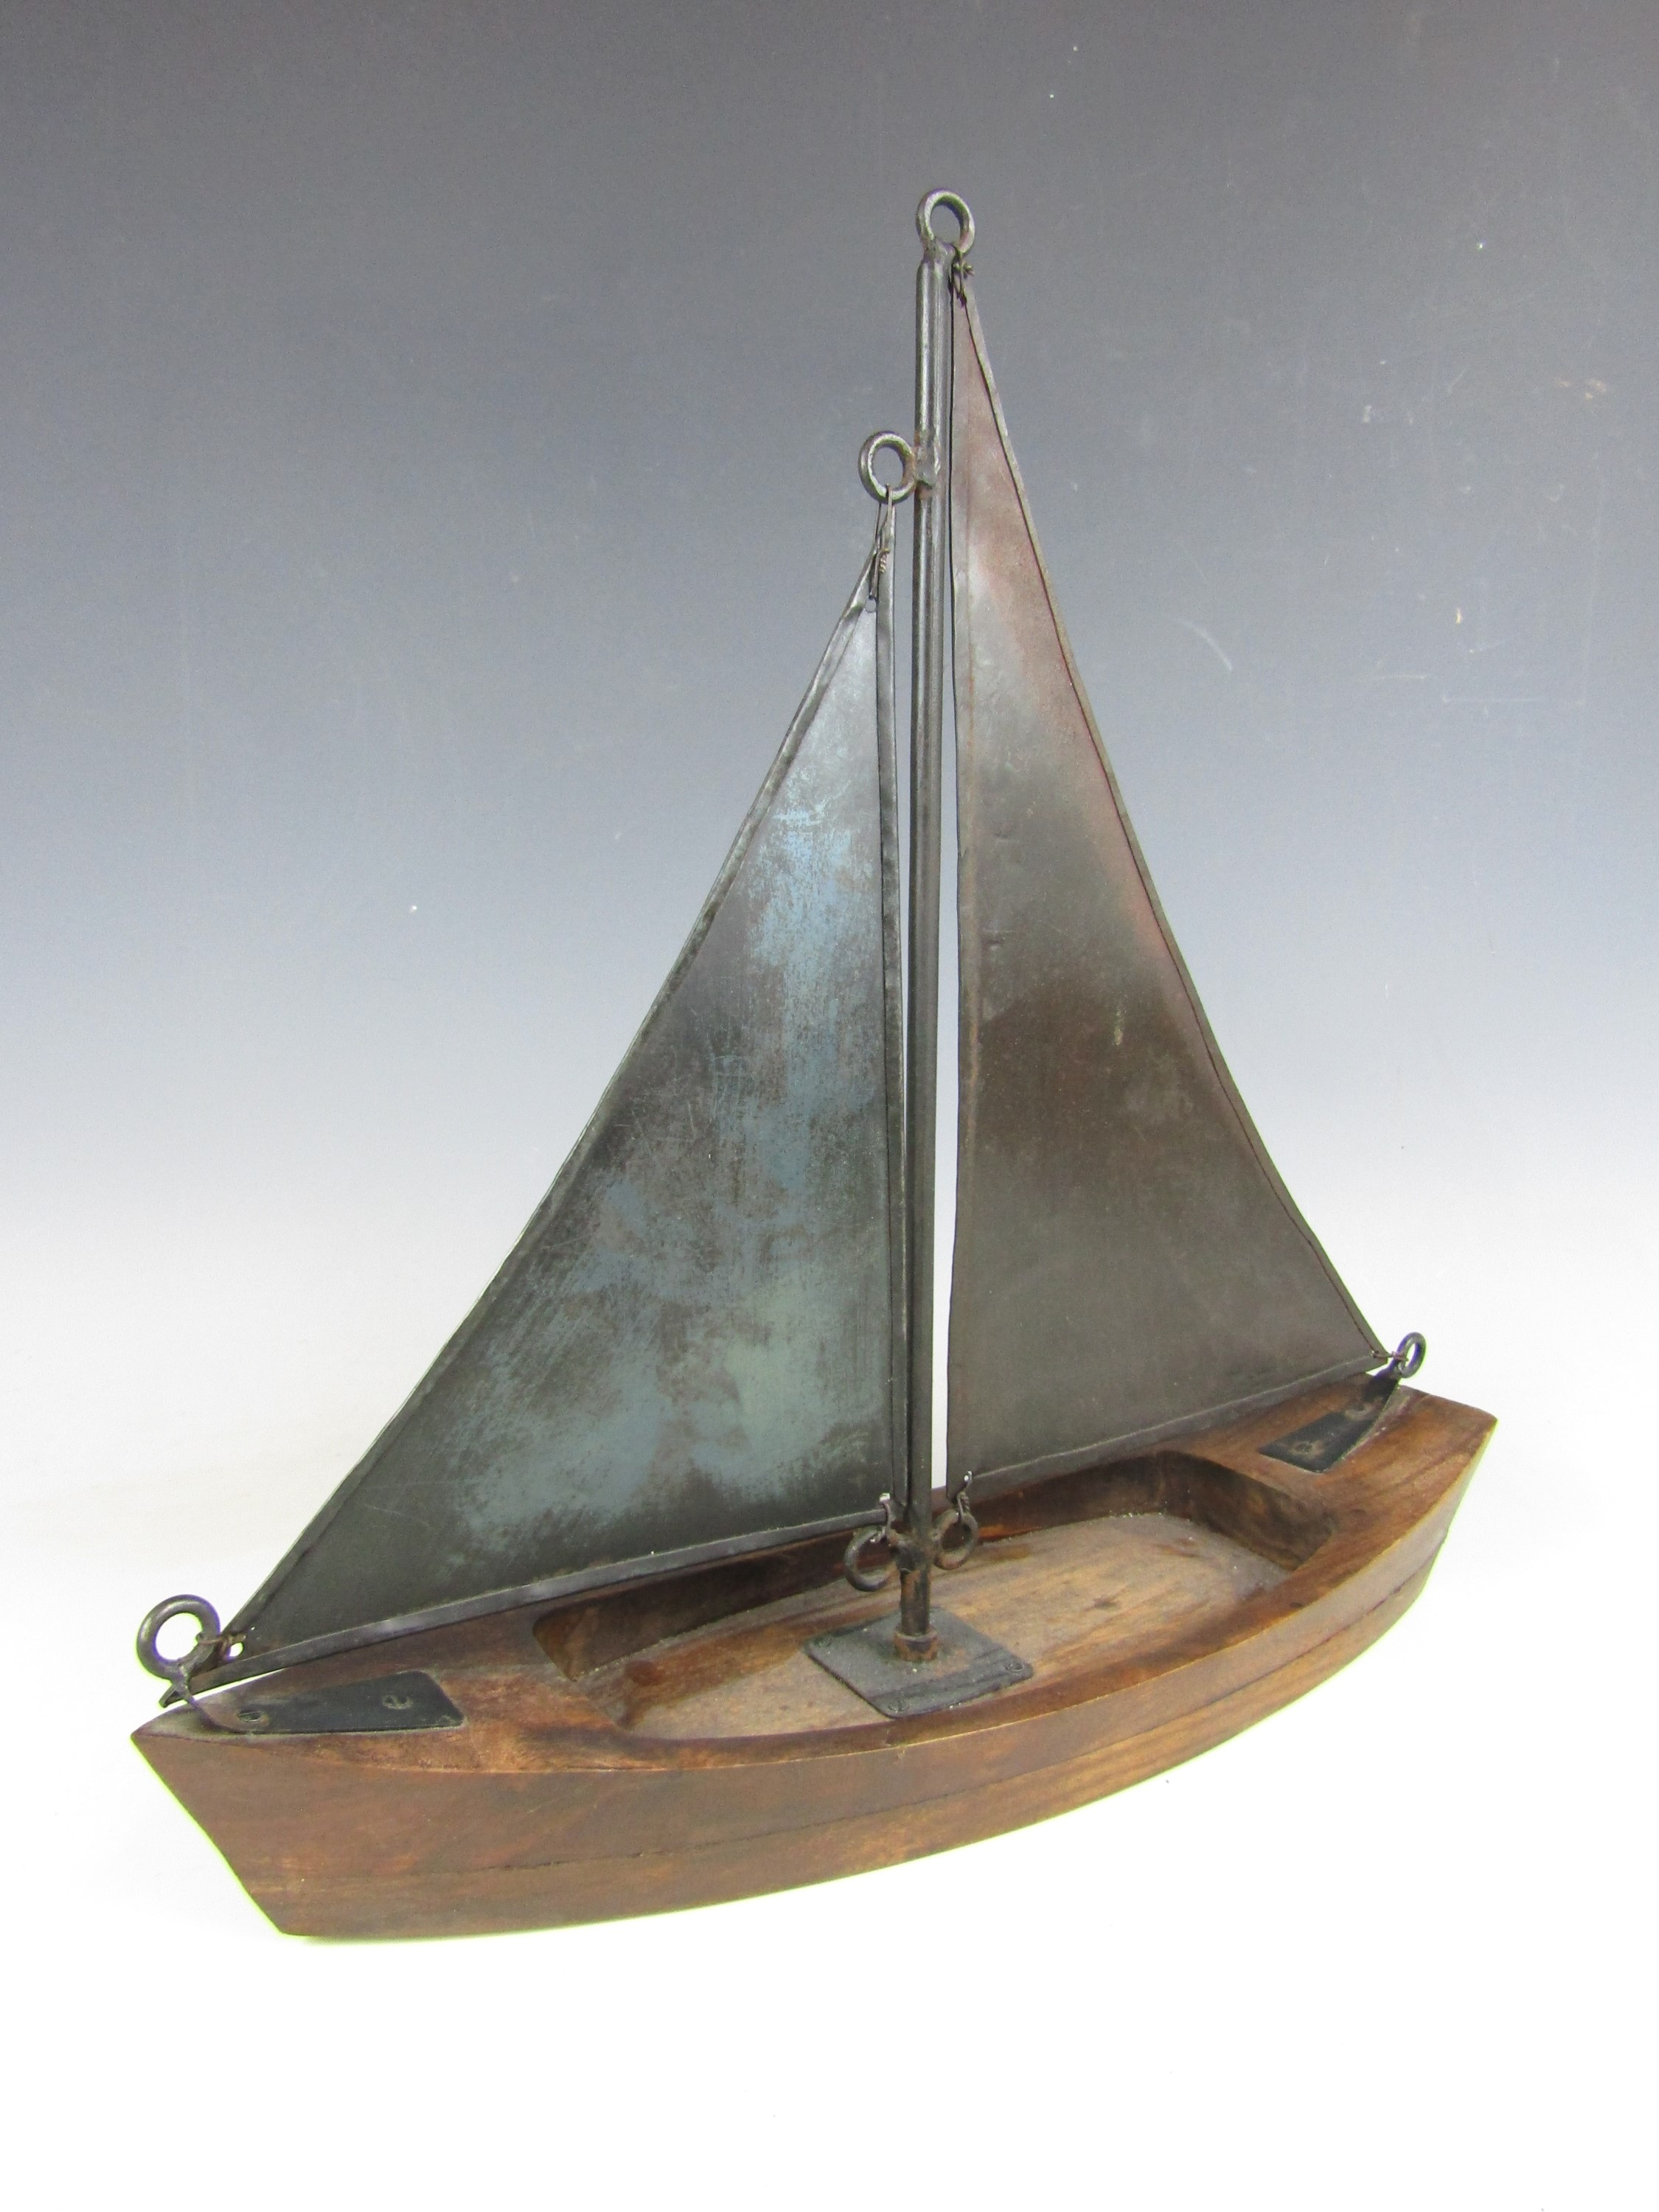 Lot 48 - A contemporary interior decor model of a sail boat